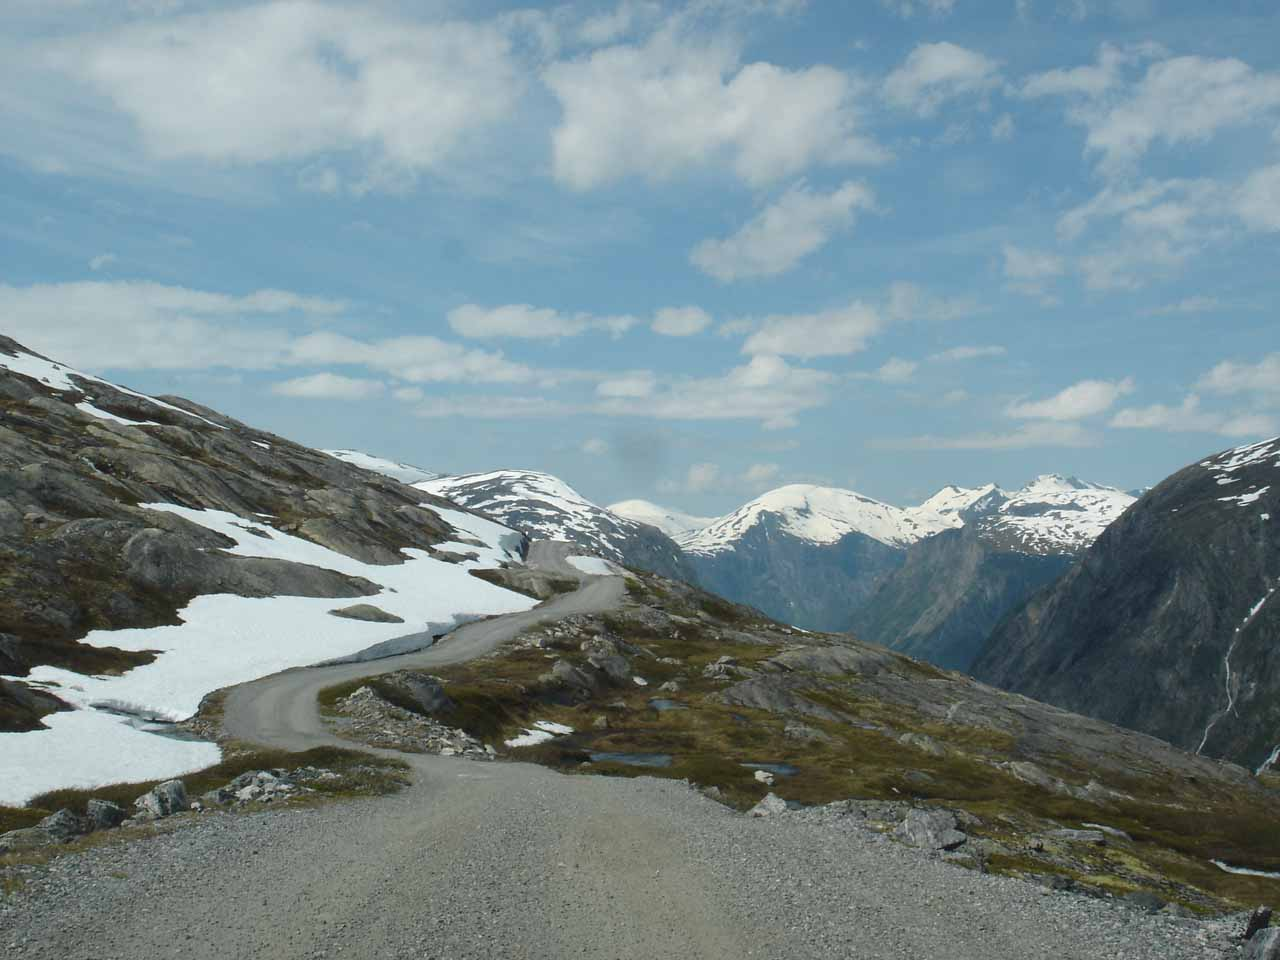 Following the narrow road back into Eikesdalen